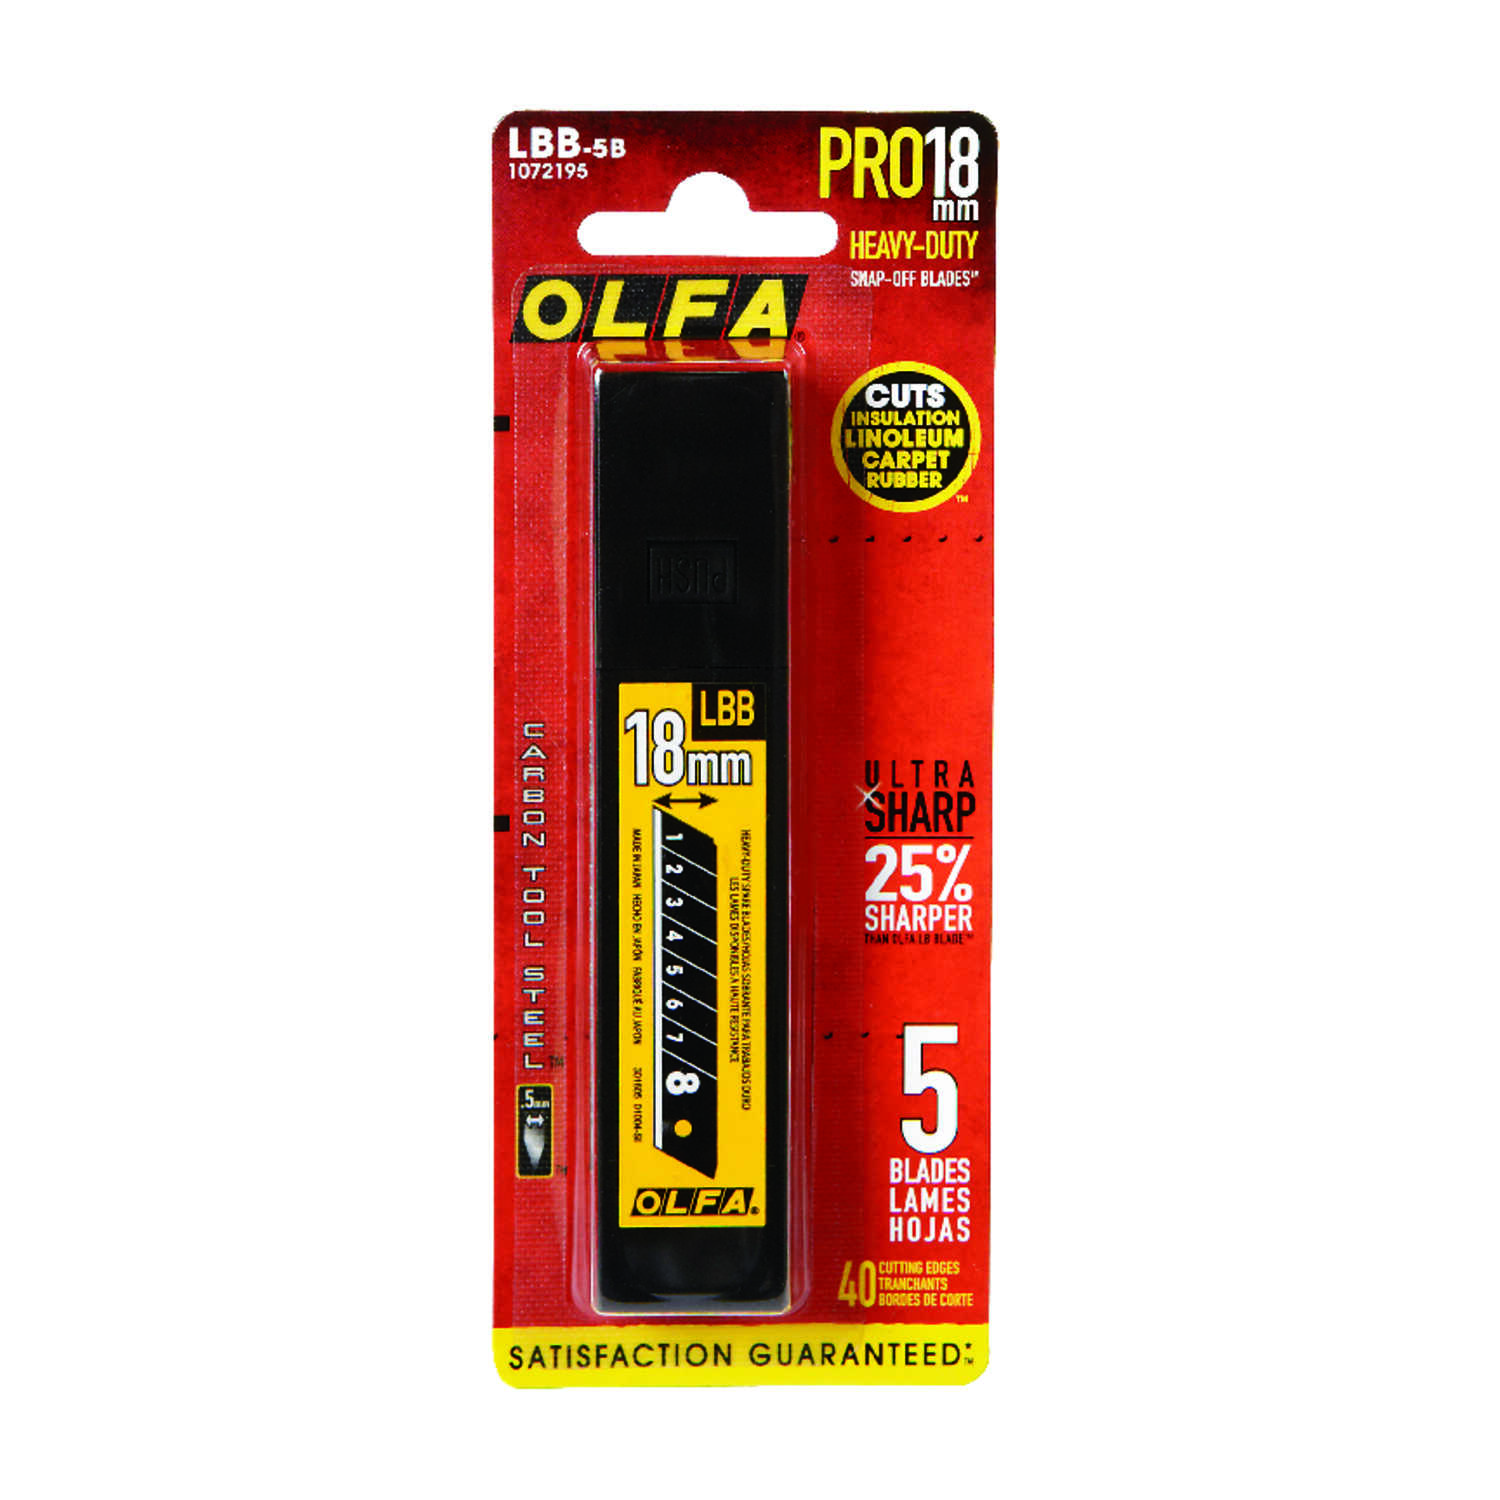 OLFA  11/16 in. L x 18 mm  Carbon Steel  8 Point  Replacement Blade  5 pc.